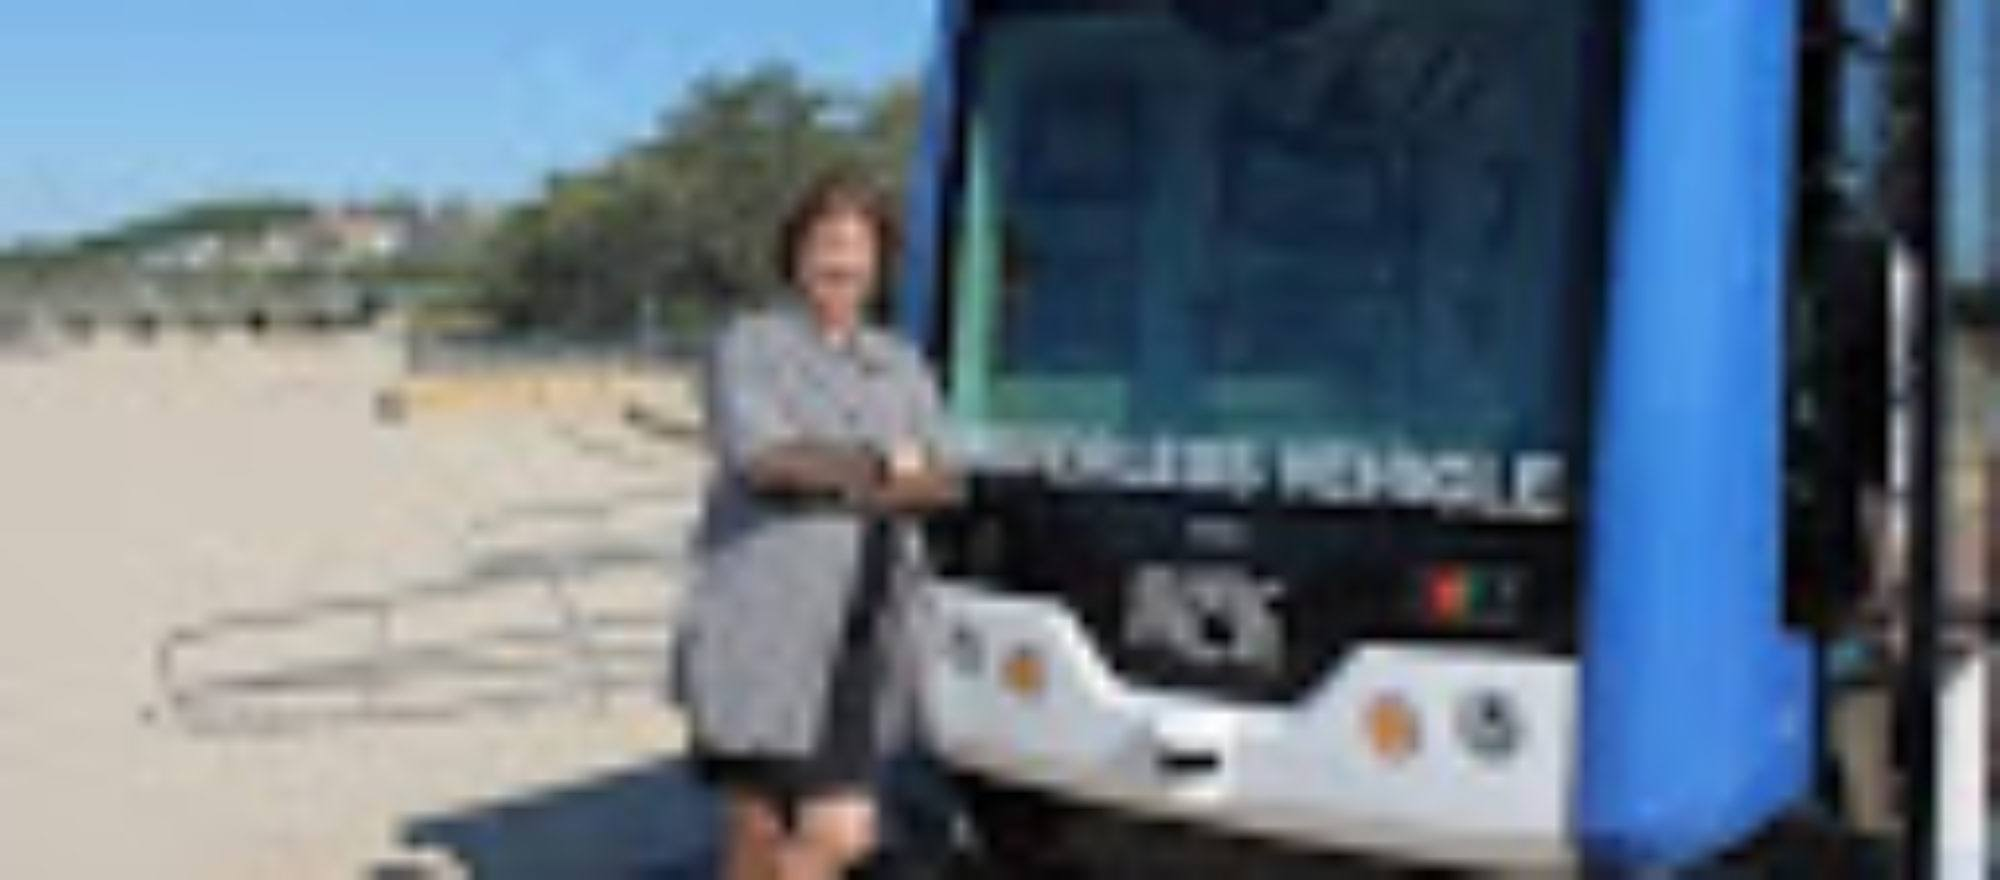 Busways to trial driverless vehicle in Coffs Harbour